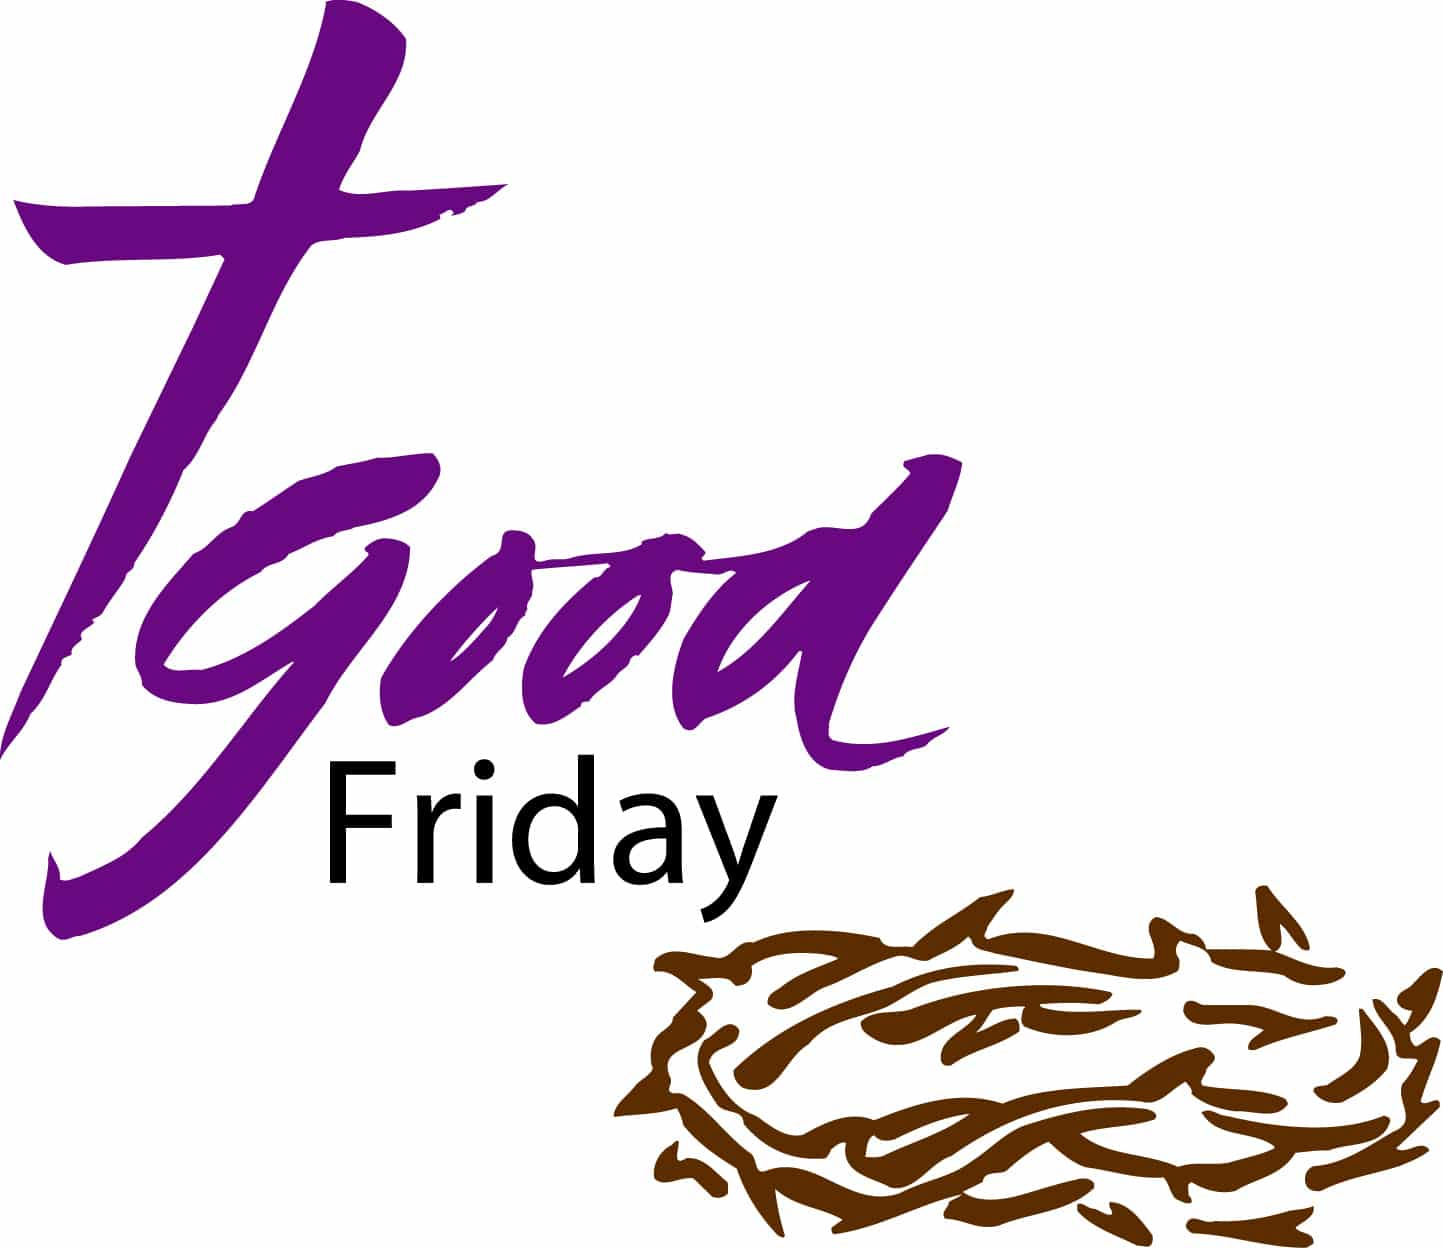 good friday clipart free images free hd images rh oppidanlibrary com good friday clip art religious good friday clip art christian